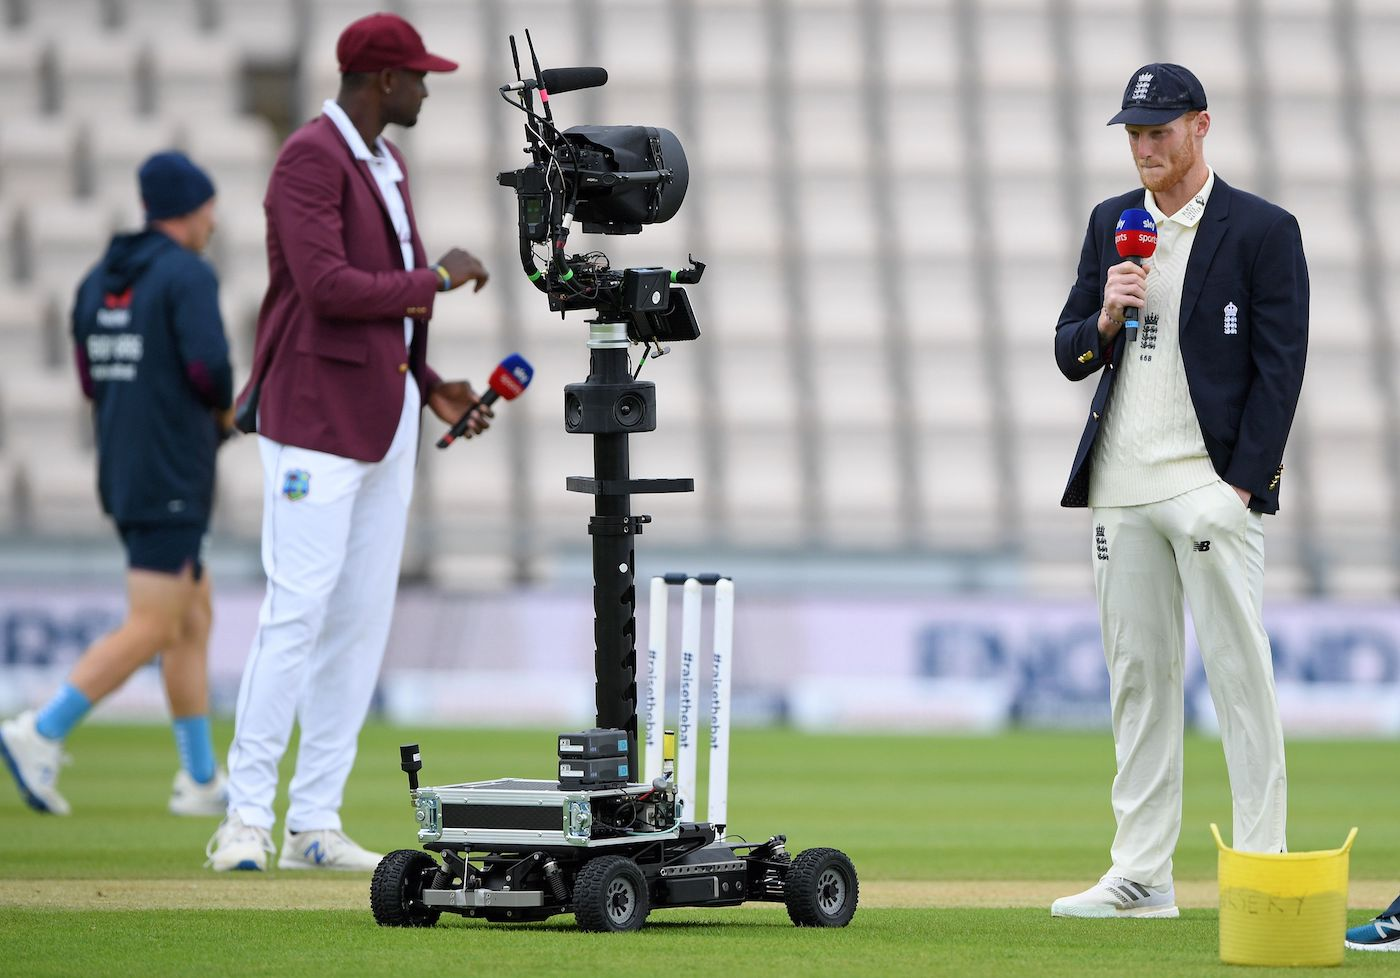 In the first game after the Covid-19 hiatus, roving robot cameras were used for the toss and to conduct player interviews